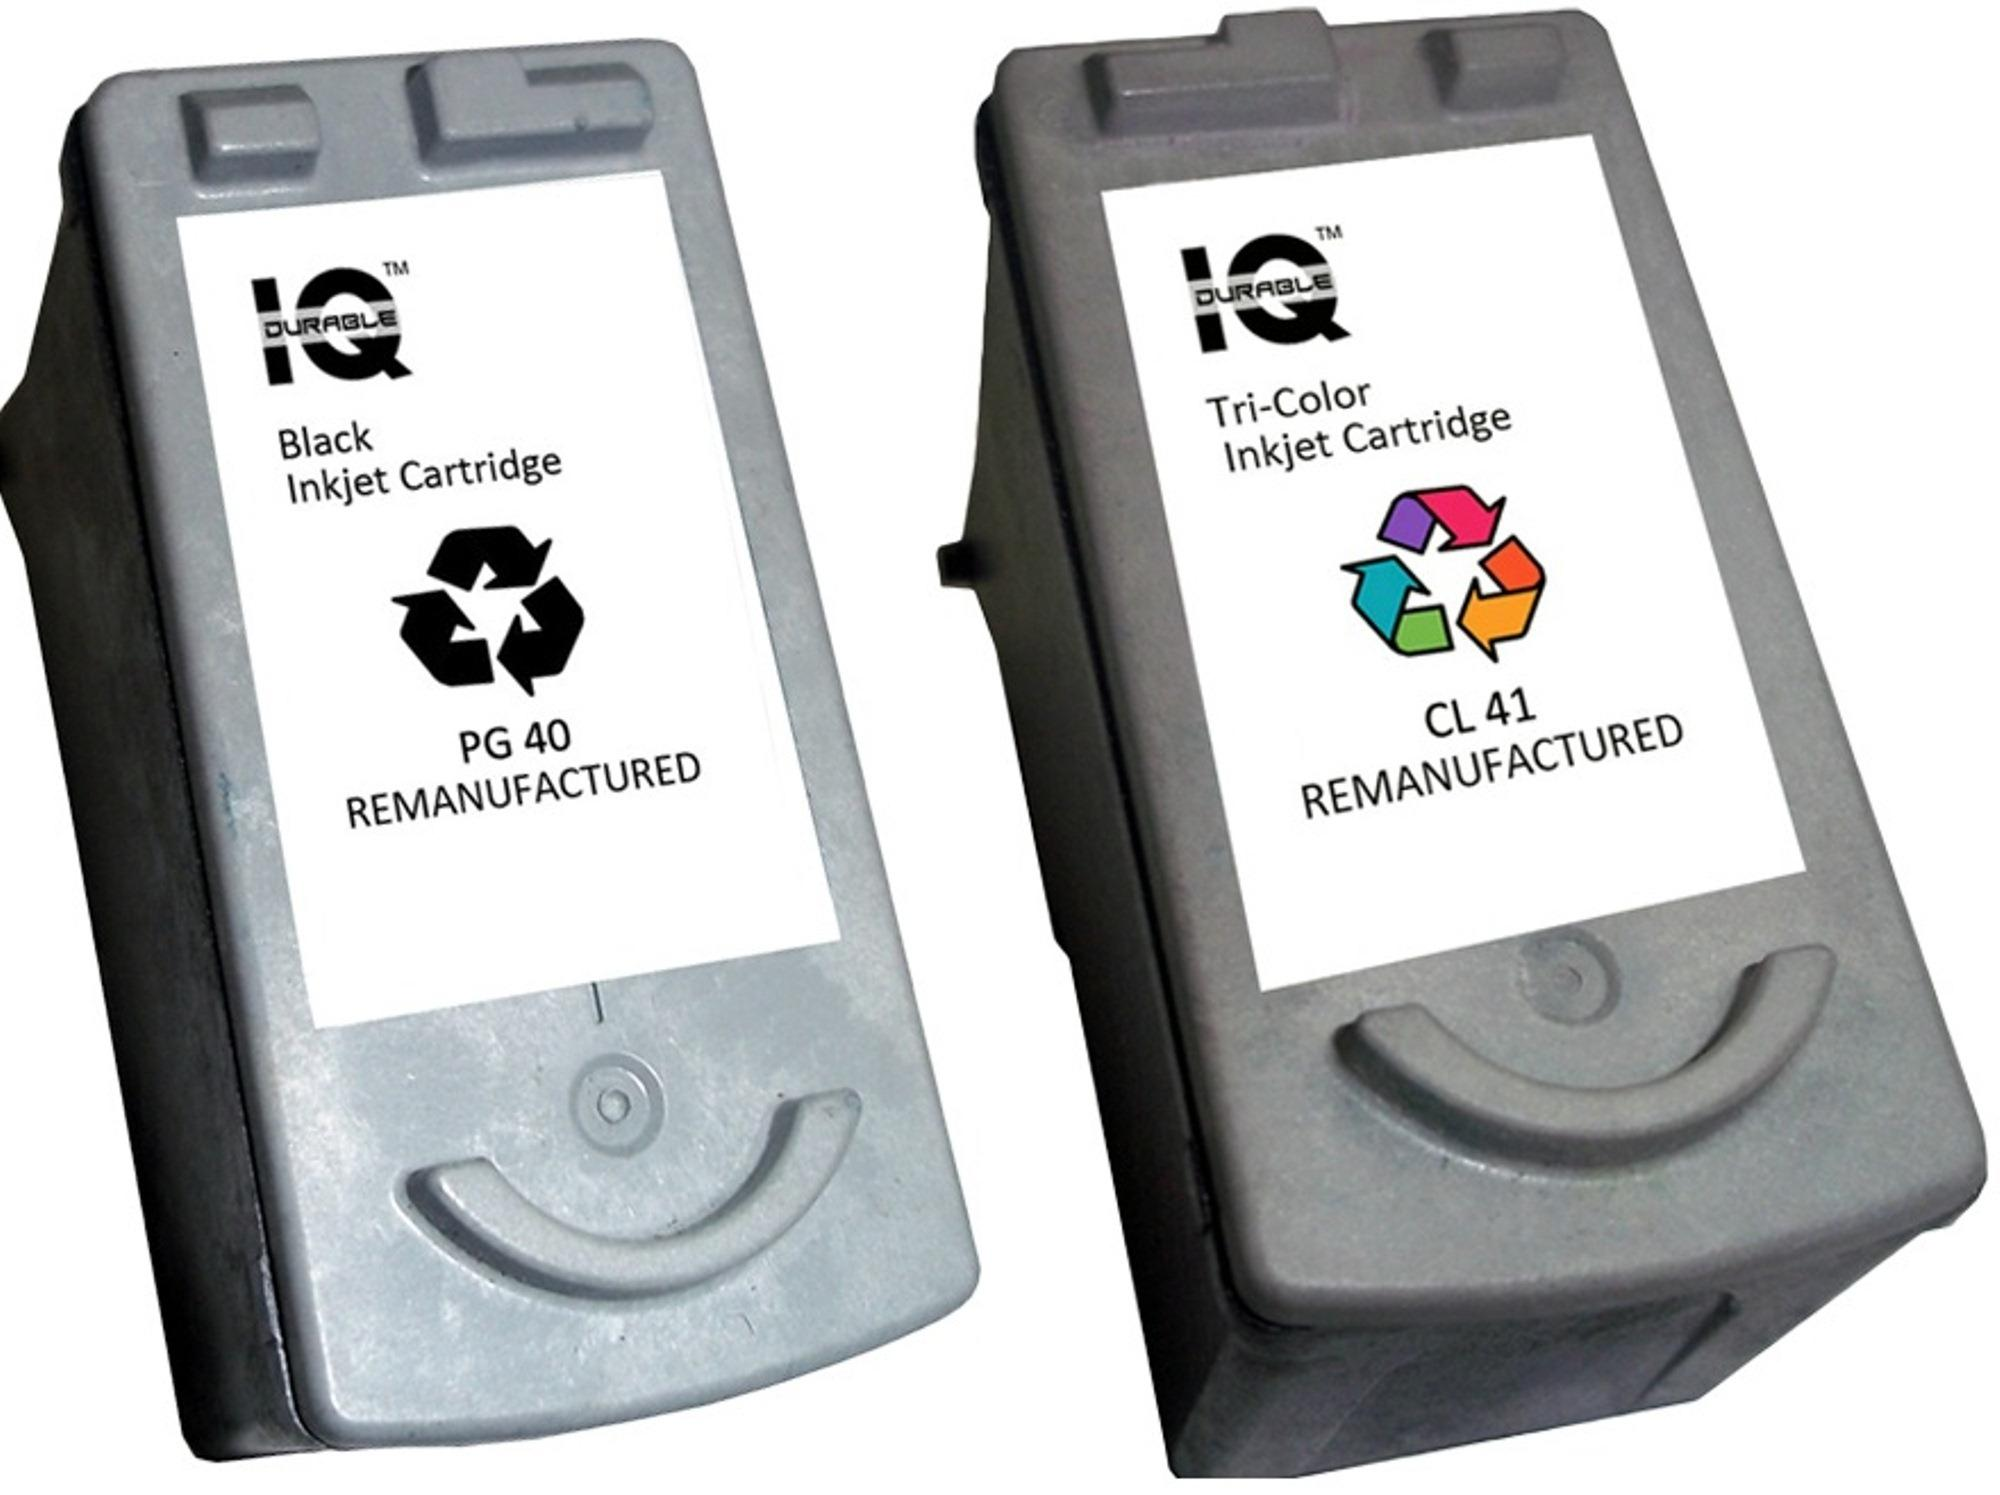 Remanufactured Canon Pg-40 (black) With Canon Cl-41 (tri-Color) Ink Cartridge By Iq Durable.